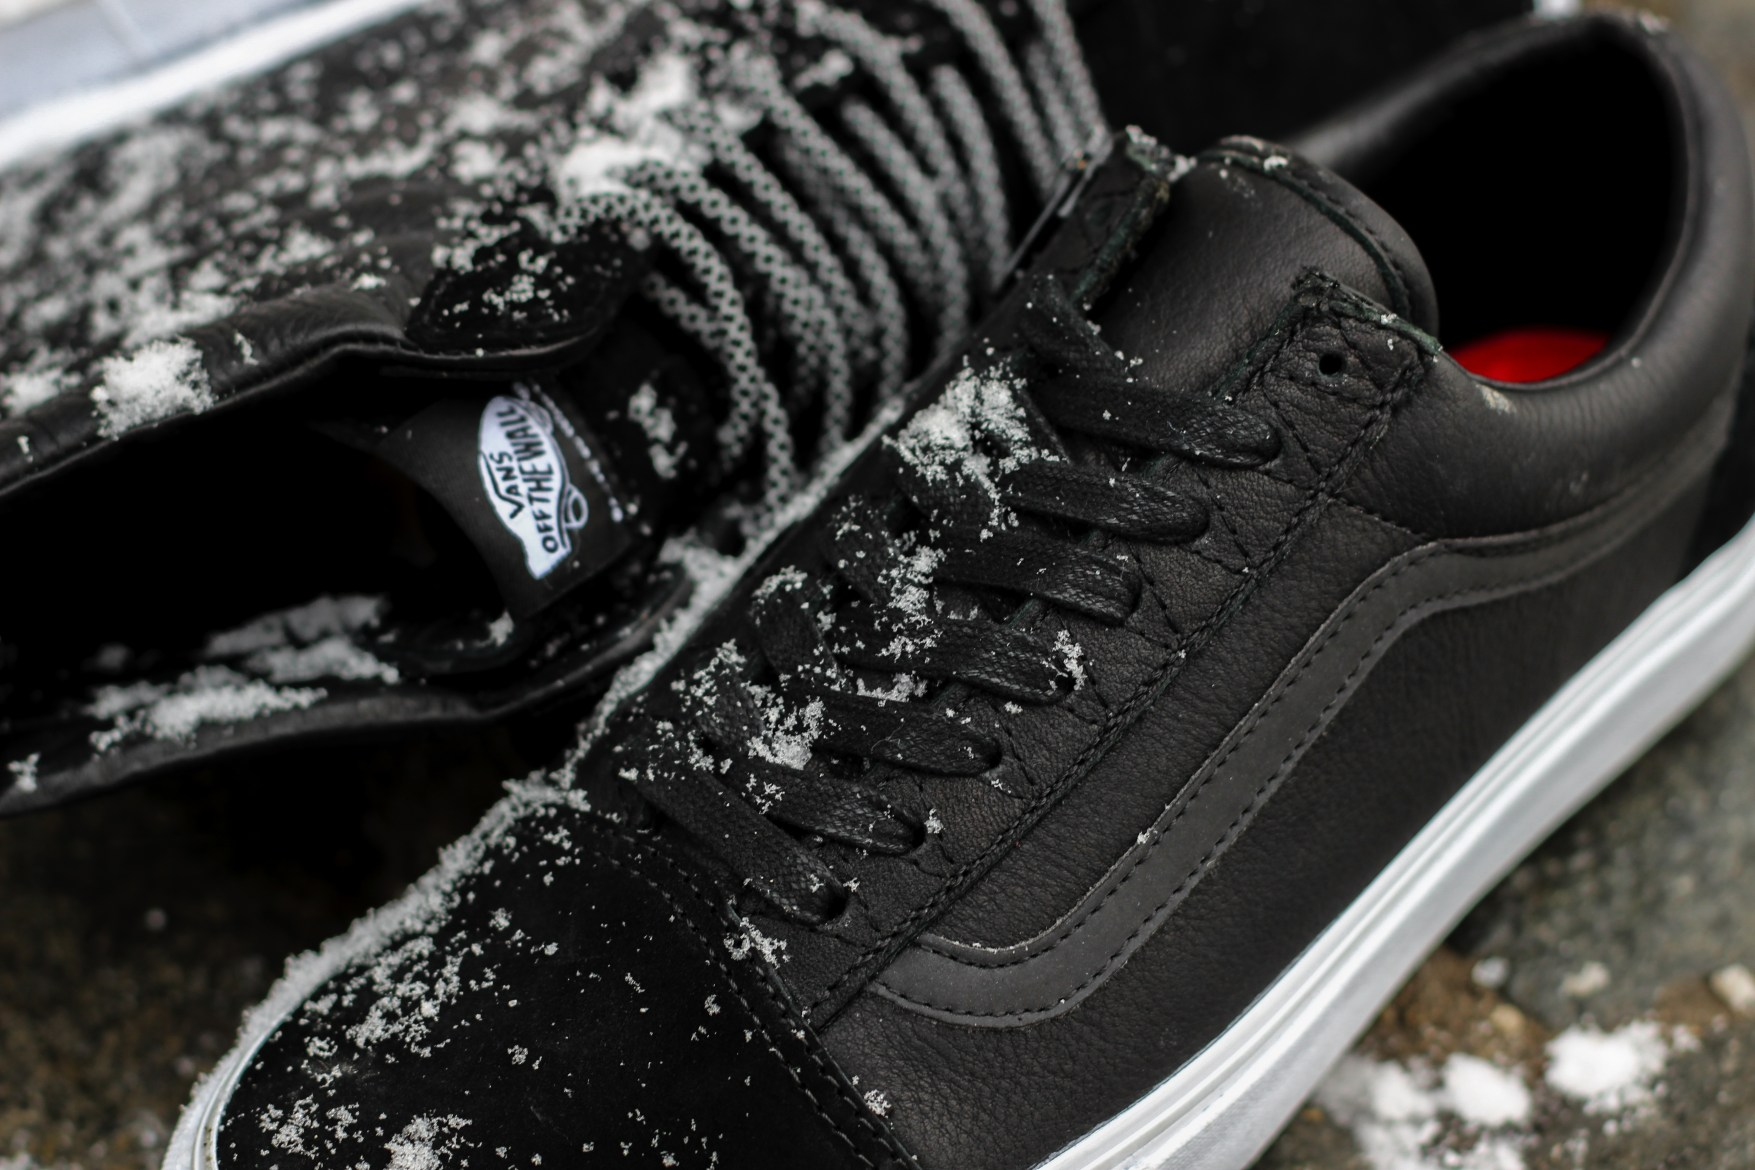 the-raised-by-wolves-x-oth-x-vans-pack-is-fit-for-bracing-the-elements-7.jpg